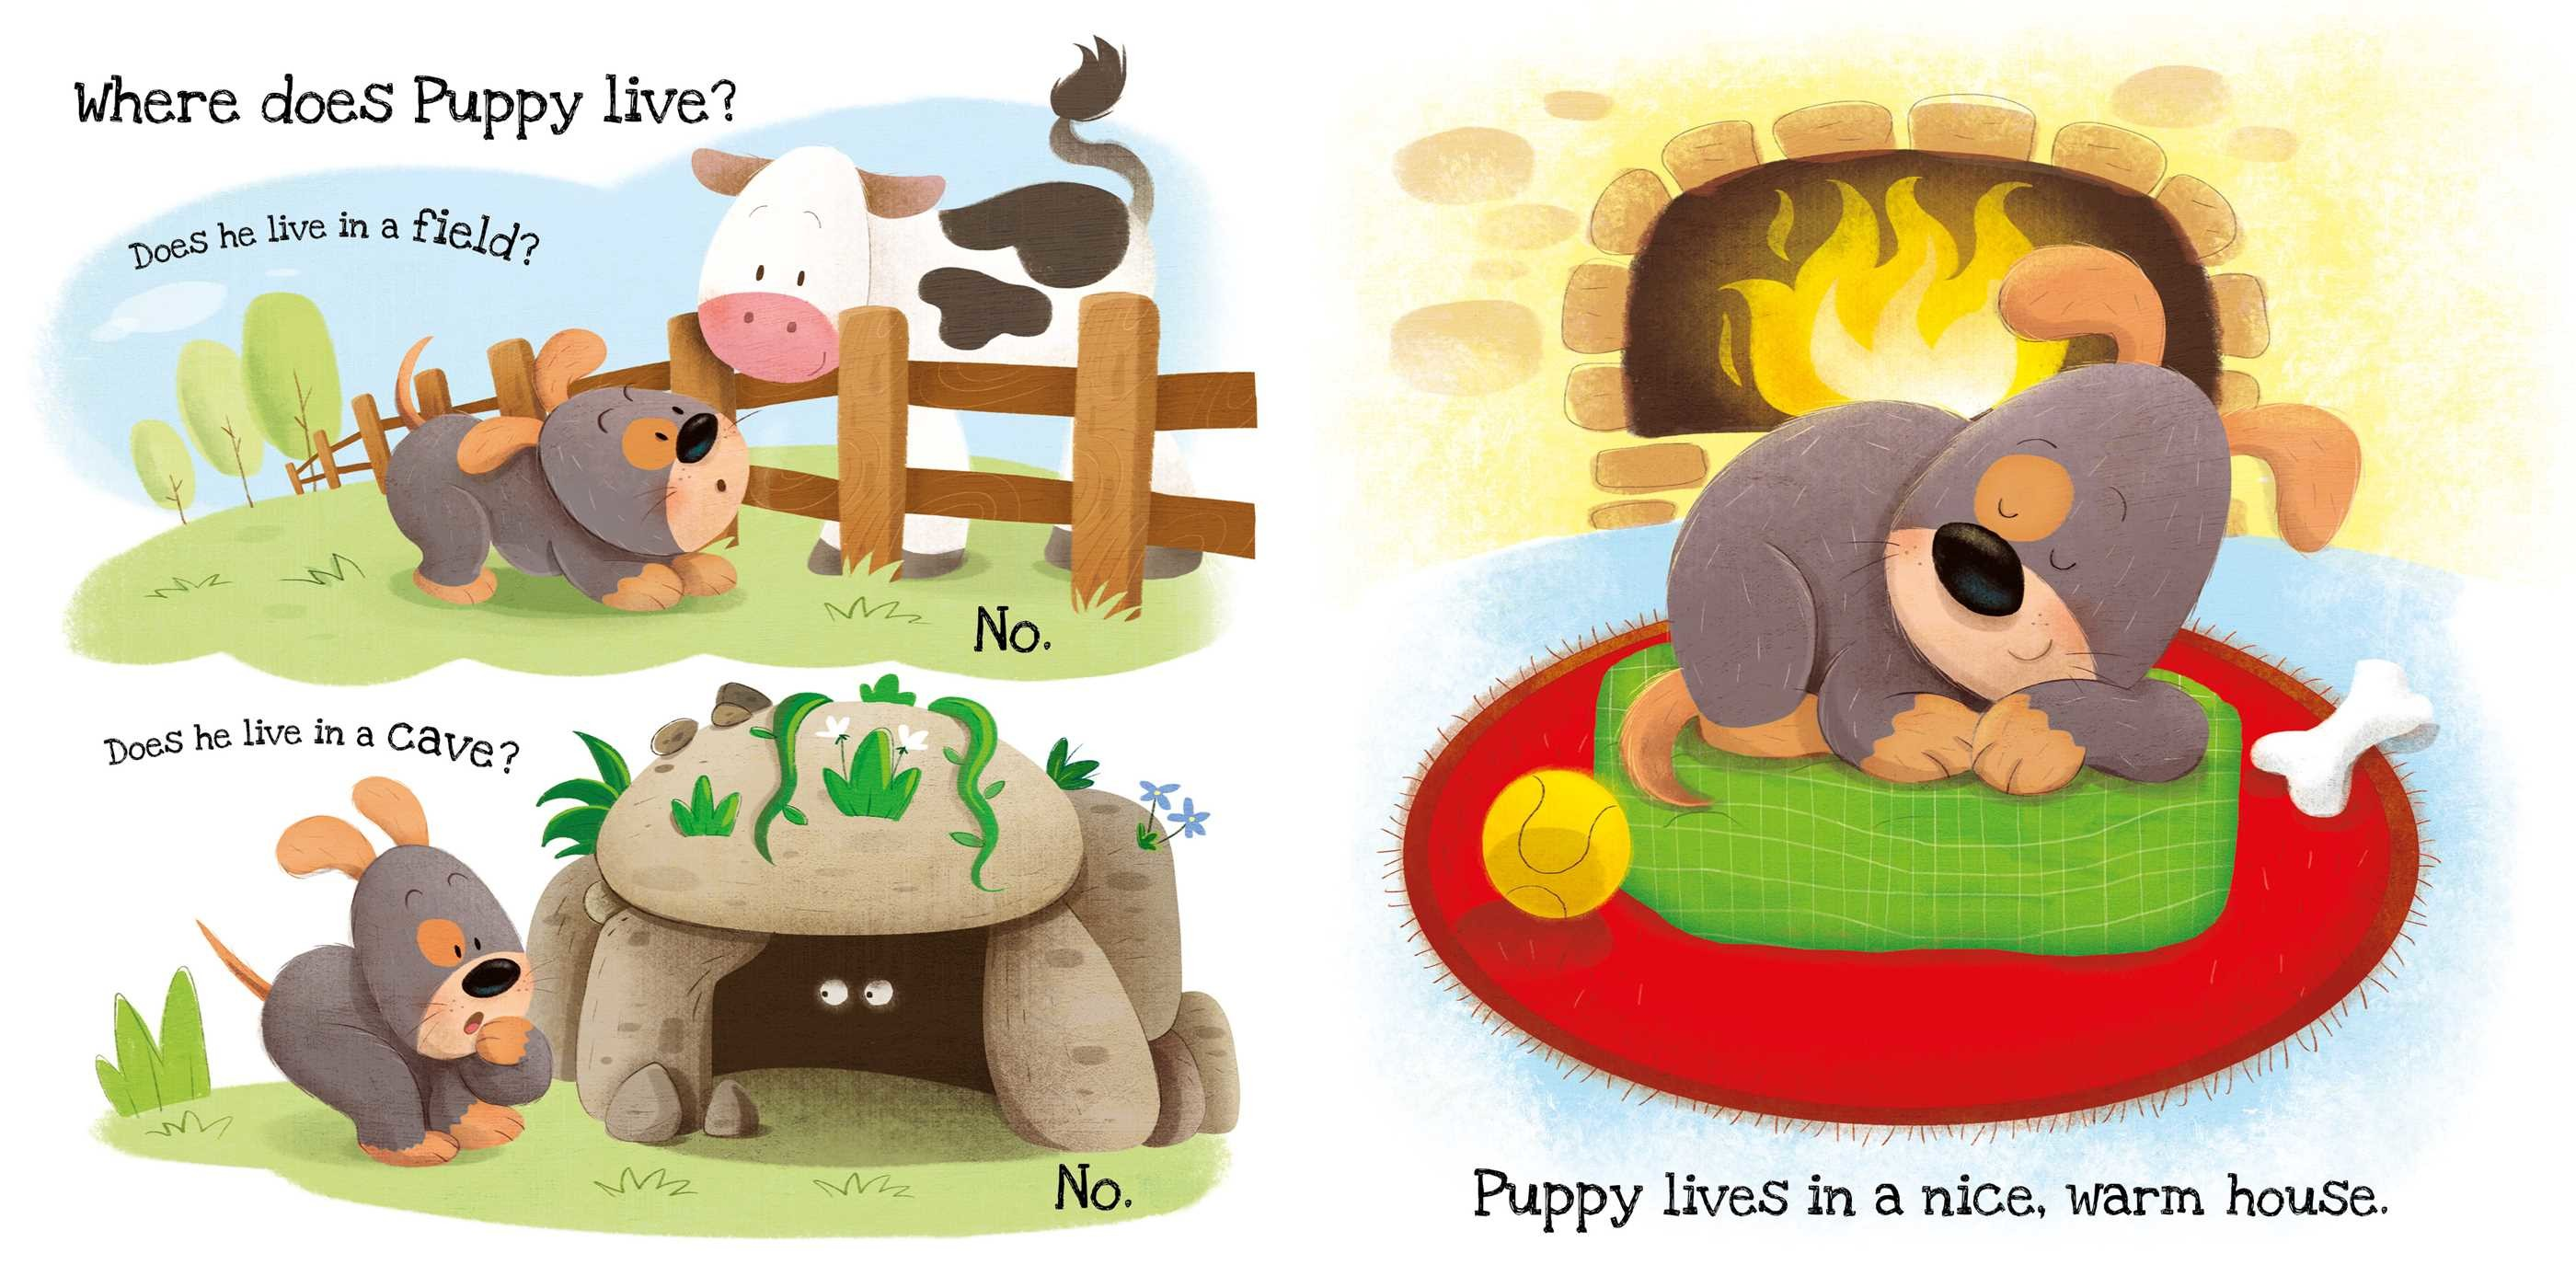 What does puppy like 9781499882346.in01